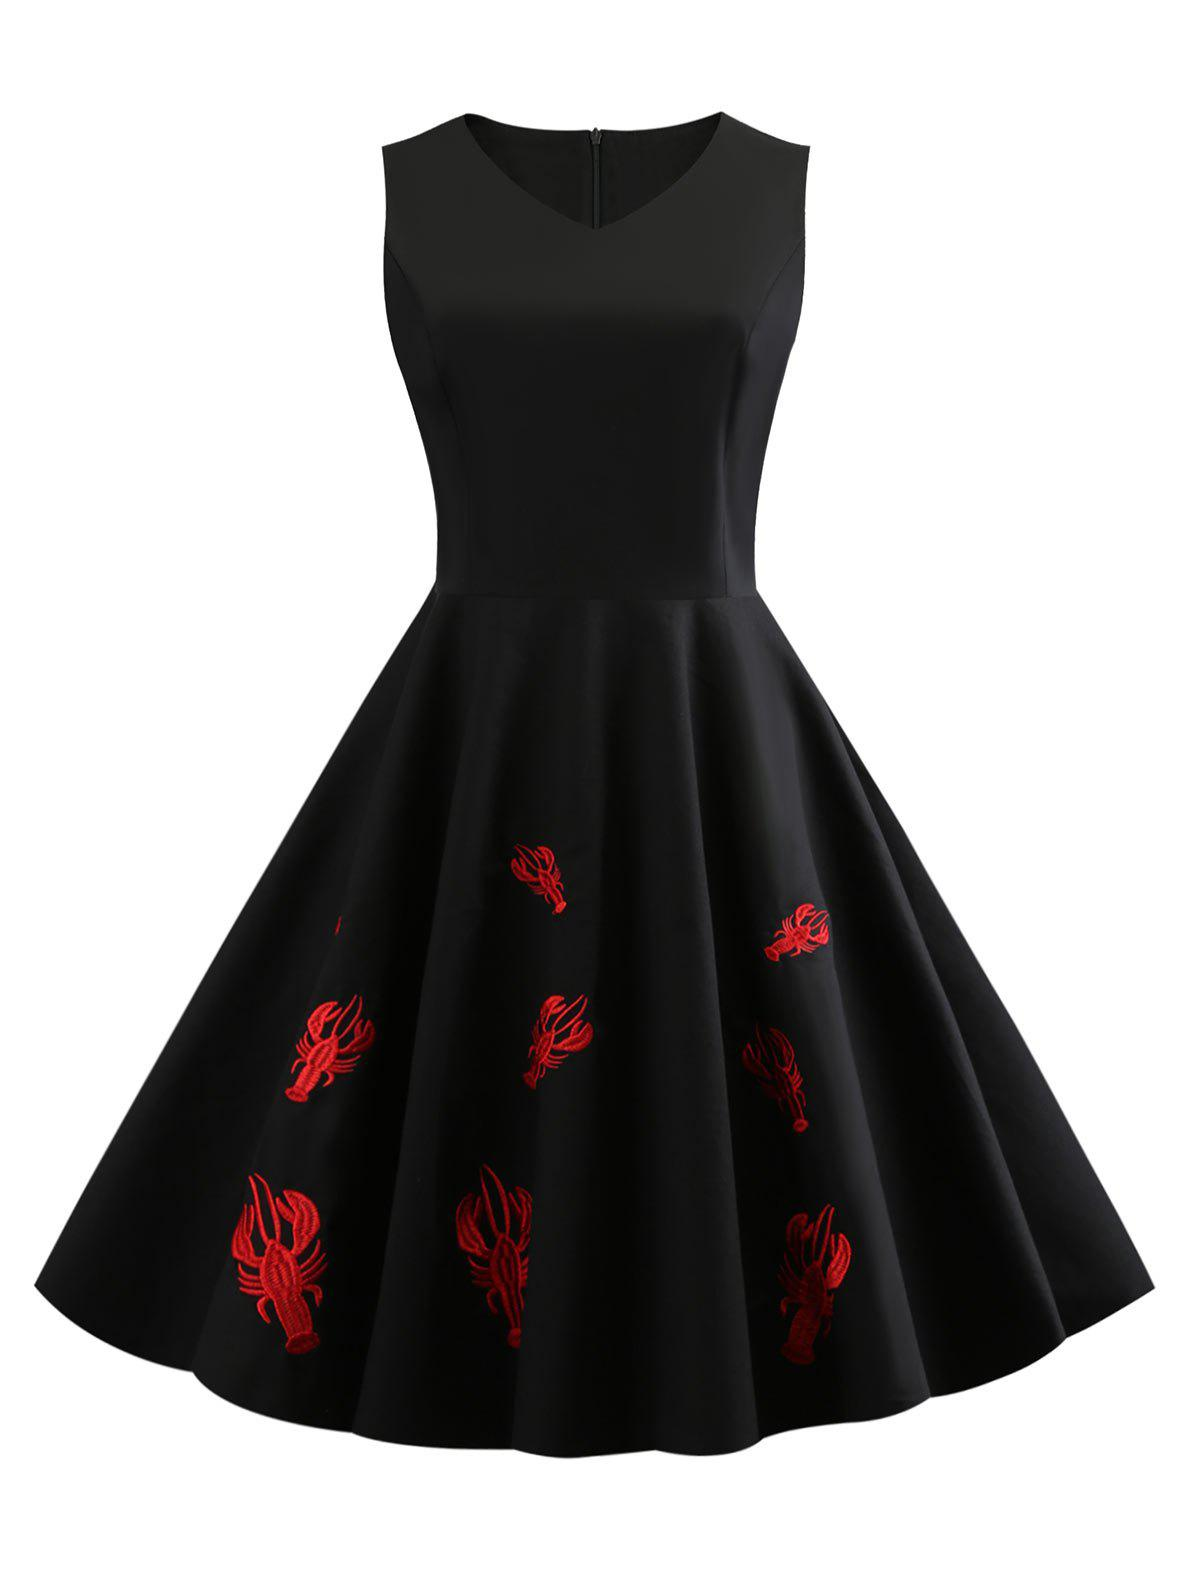 Chic Cray Embroidery V Neck Vintage Dress